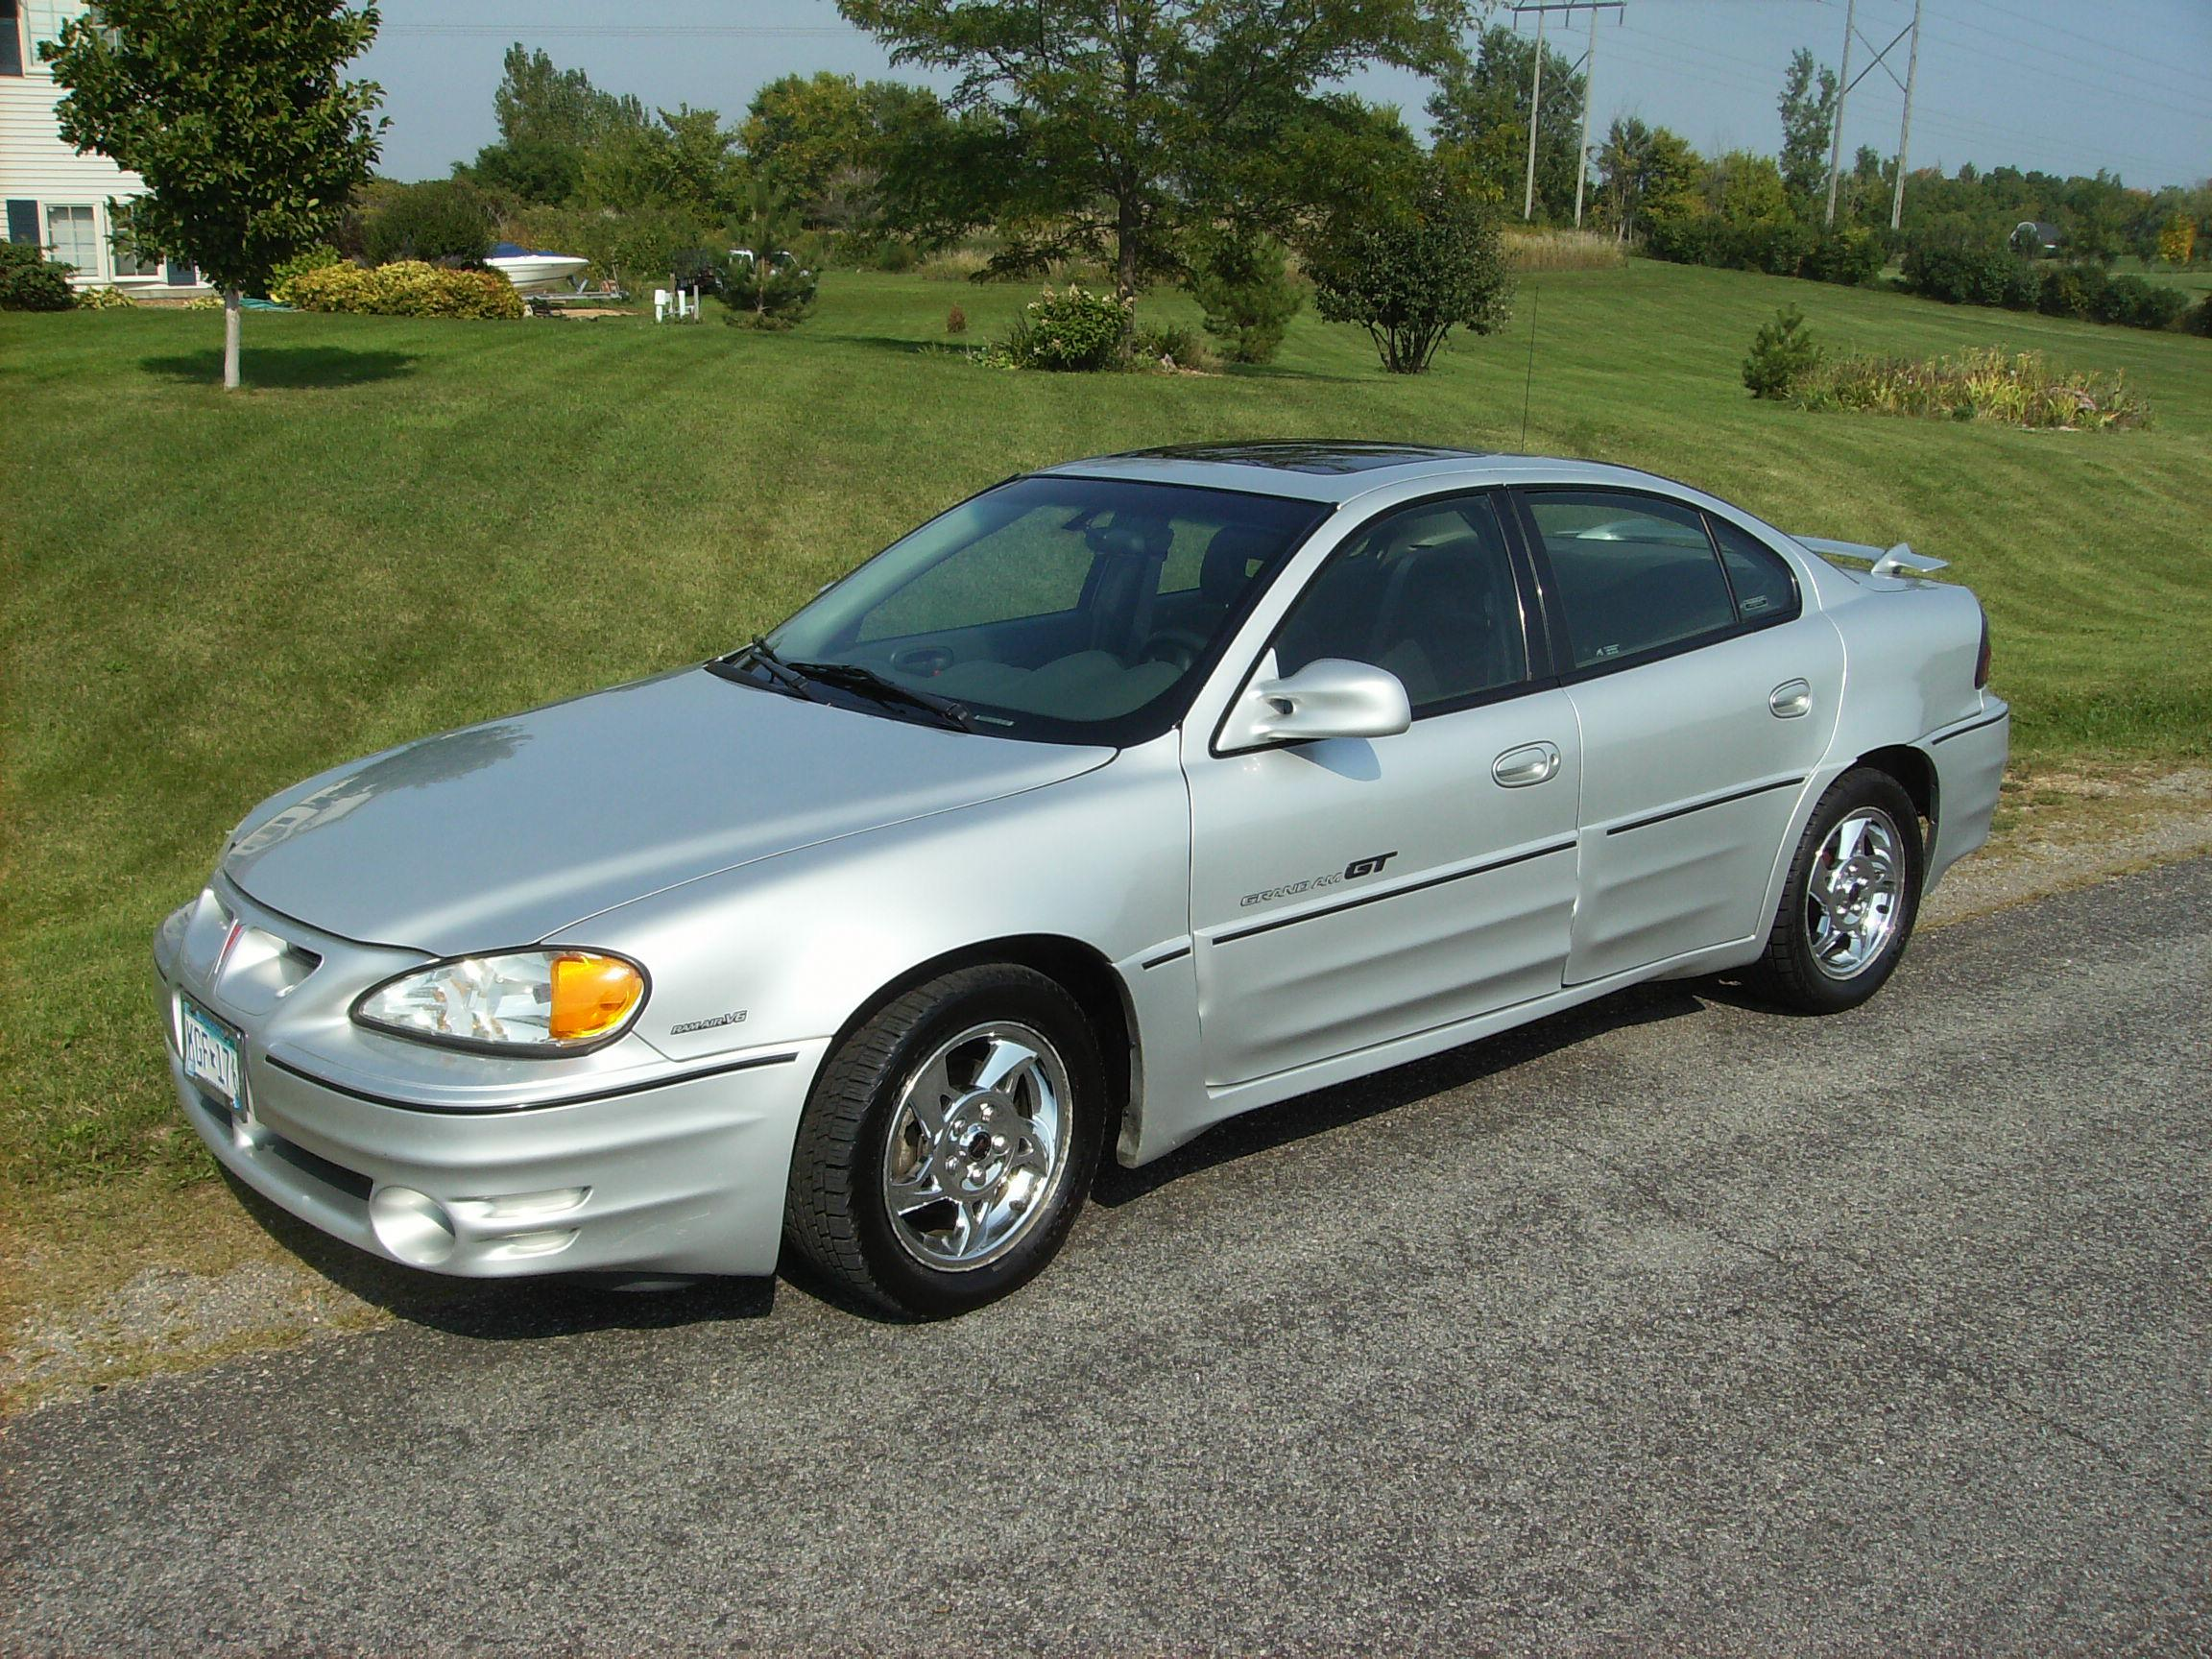 paulsobj 39 s 2002 pontiac grand am gt sedan 4d in shakopee mn. Black Bedroom Furniture Sets. Home Design Ideas